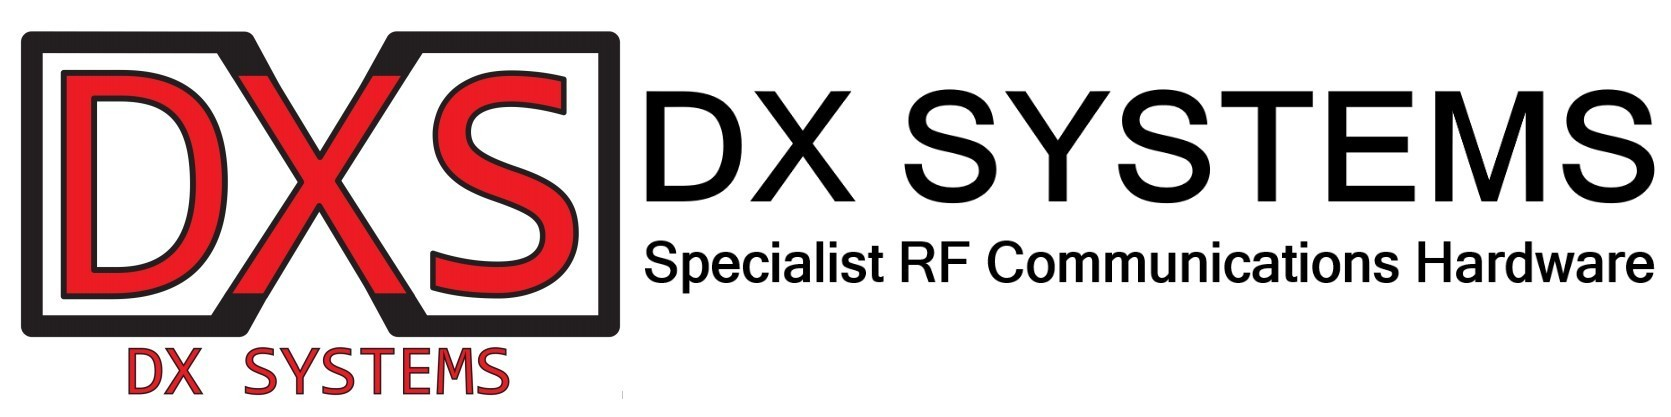 DX Systems